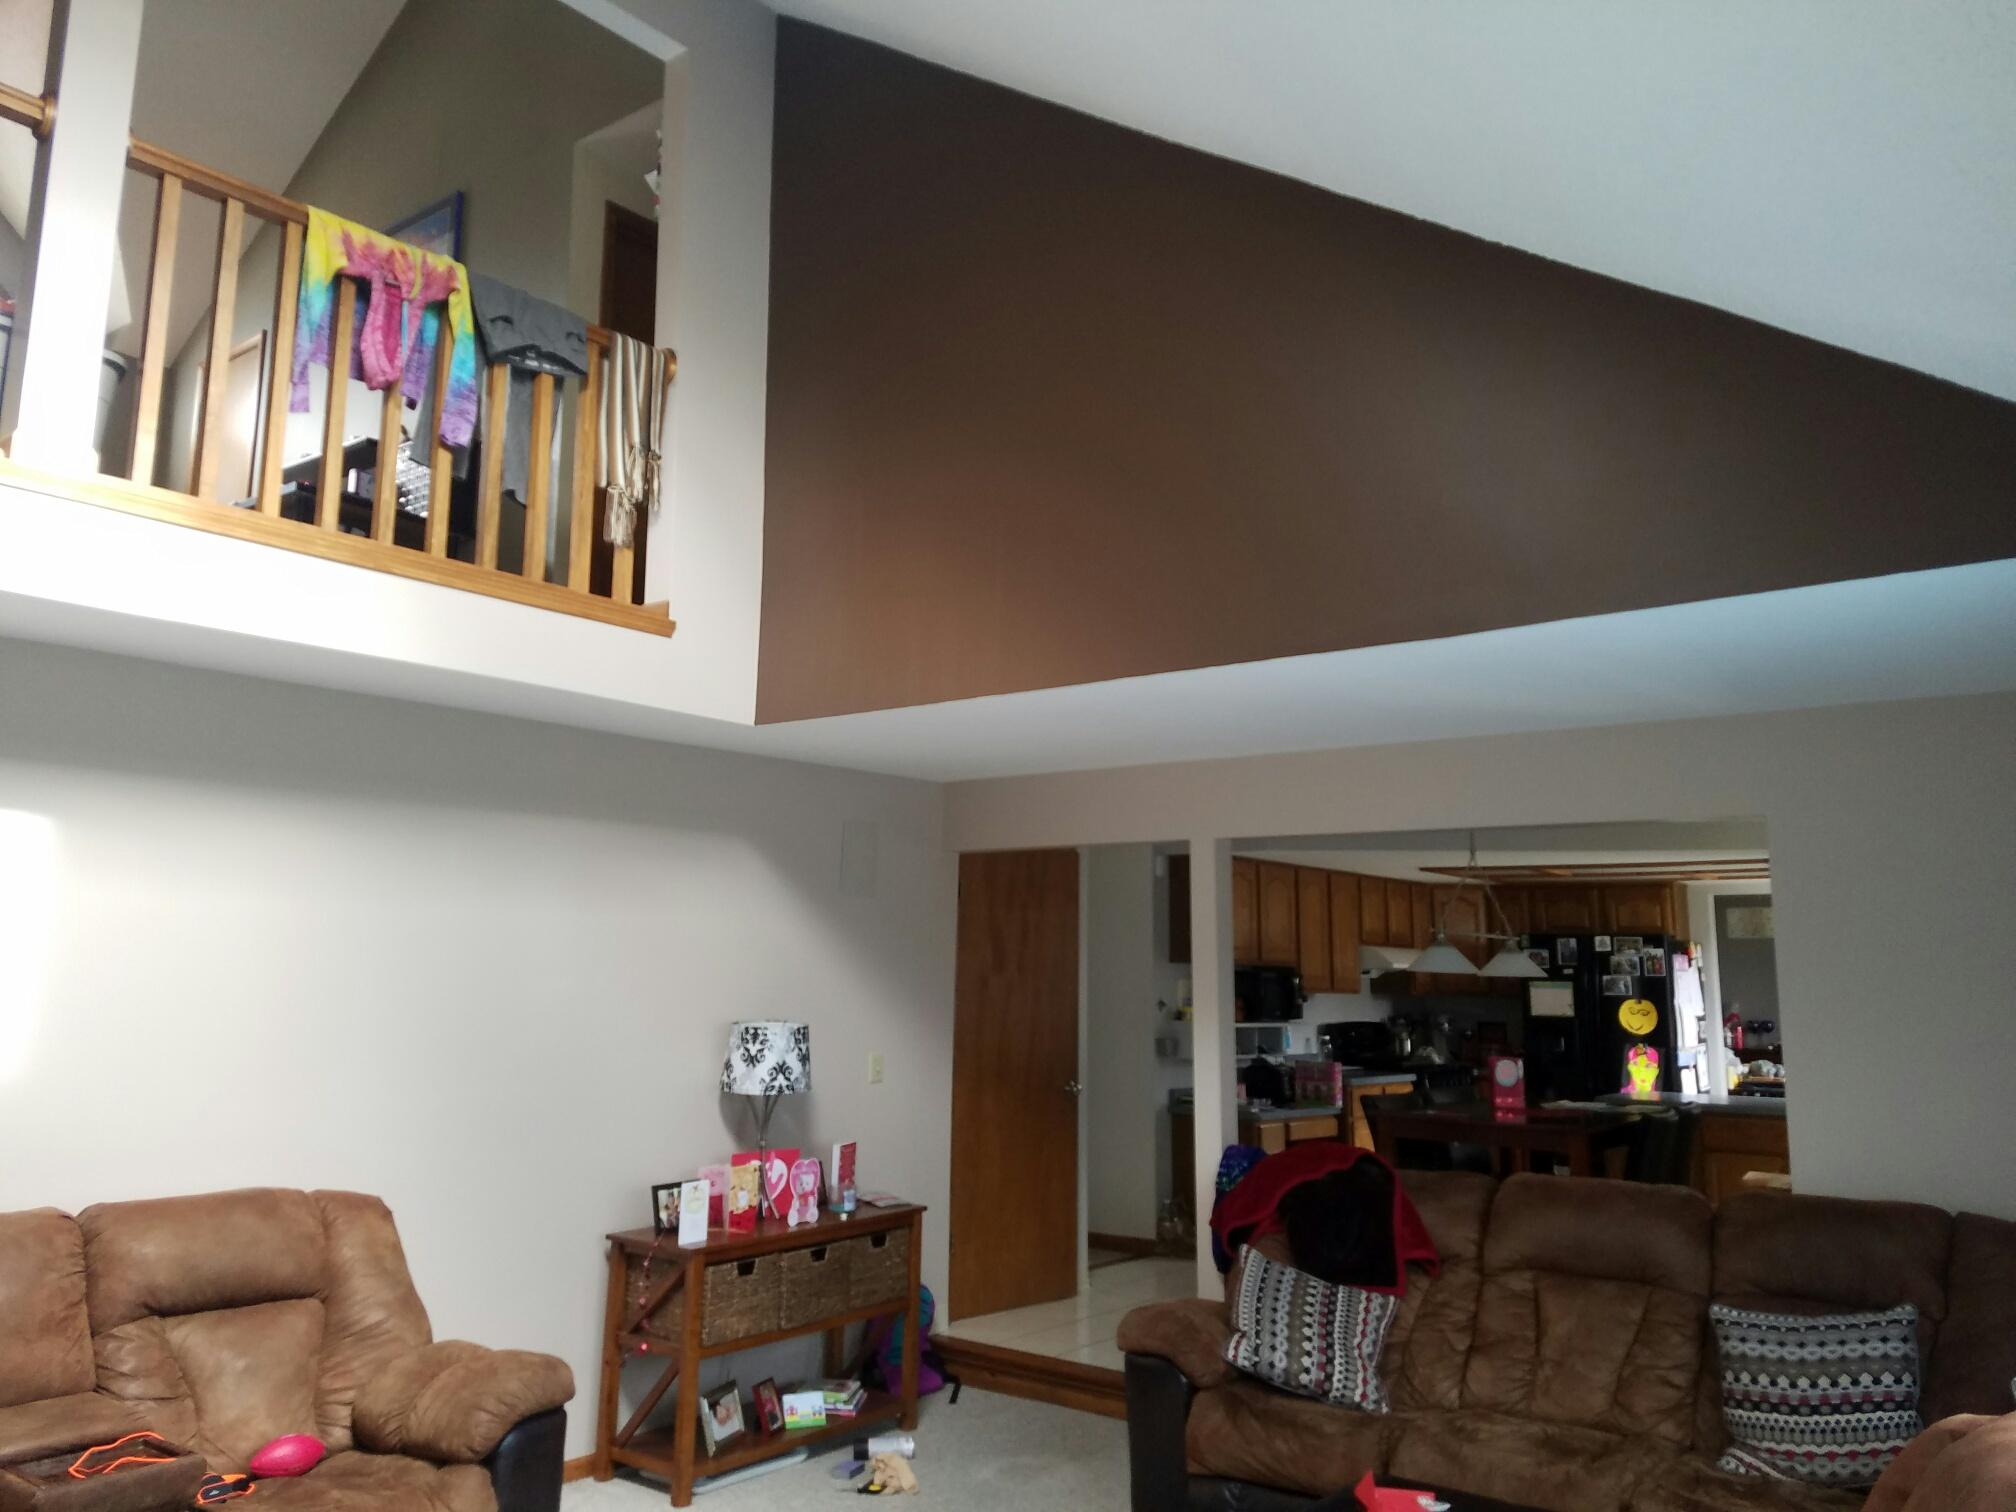 residential painting service - Amherst, NY